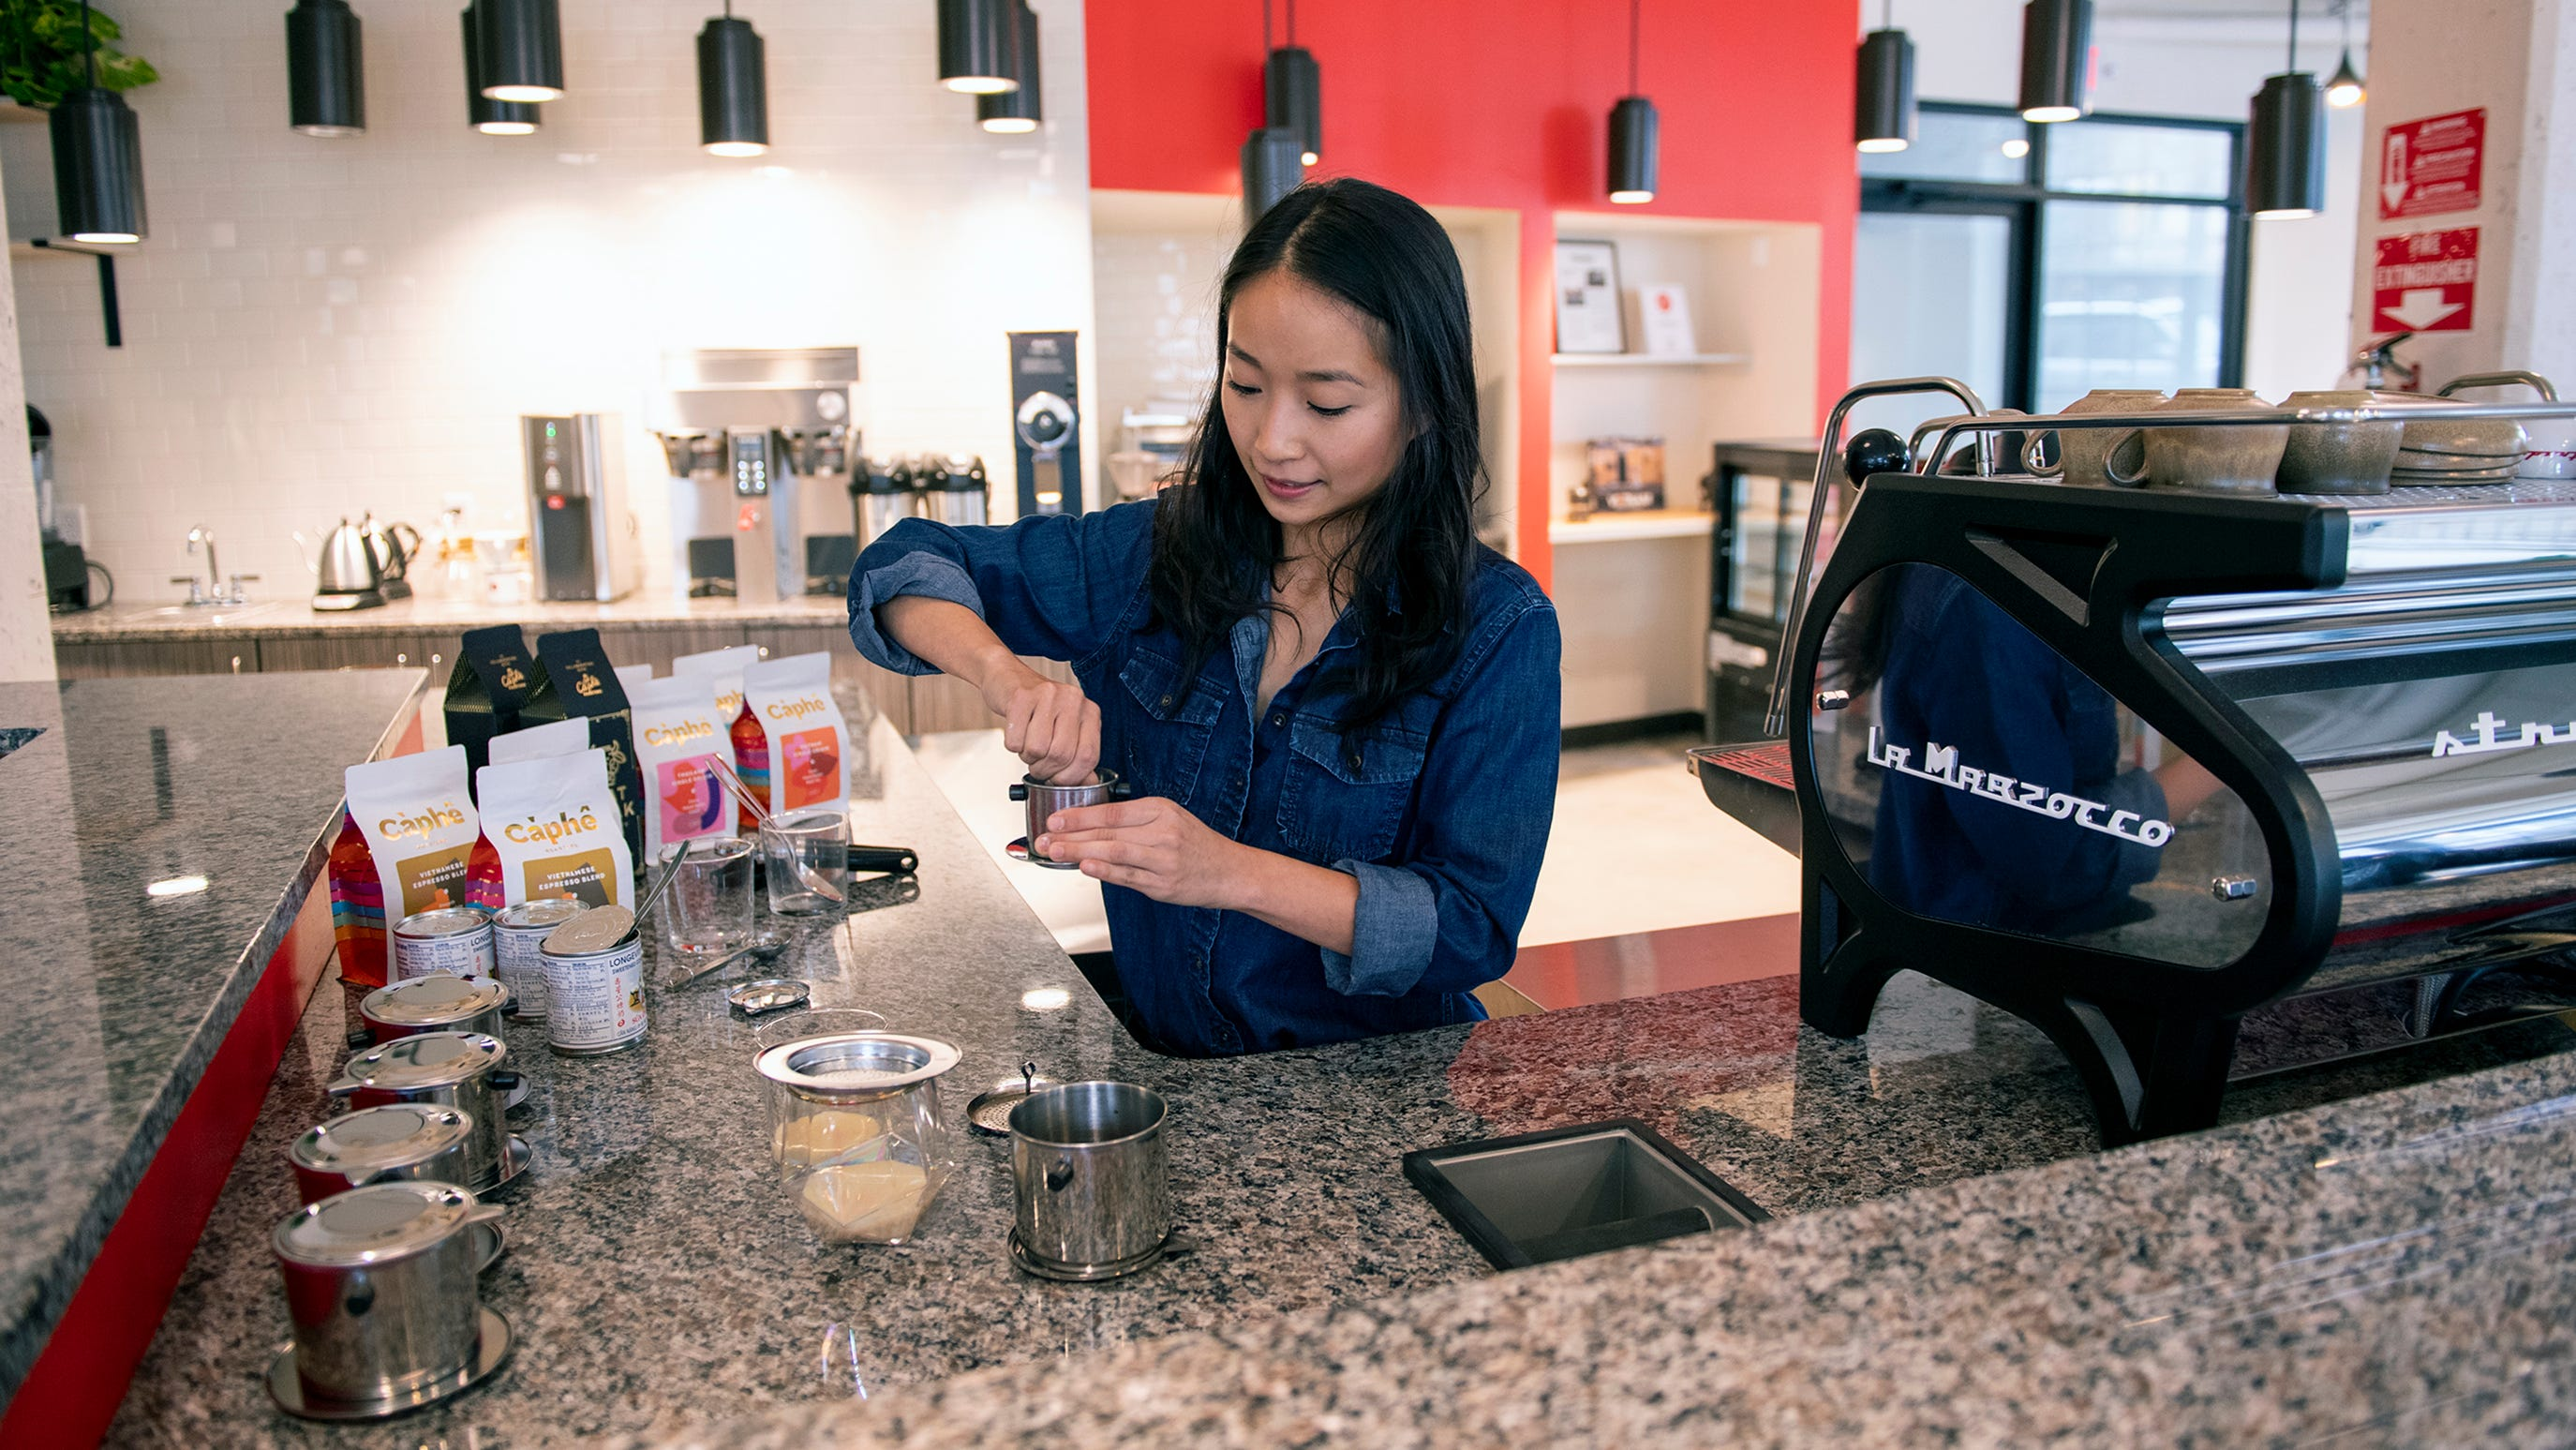 www.courierpostonline.com: A new wave of Vietnamese craft coffee is blooming in America